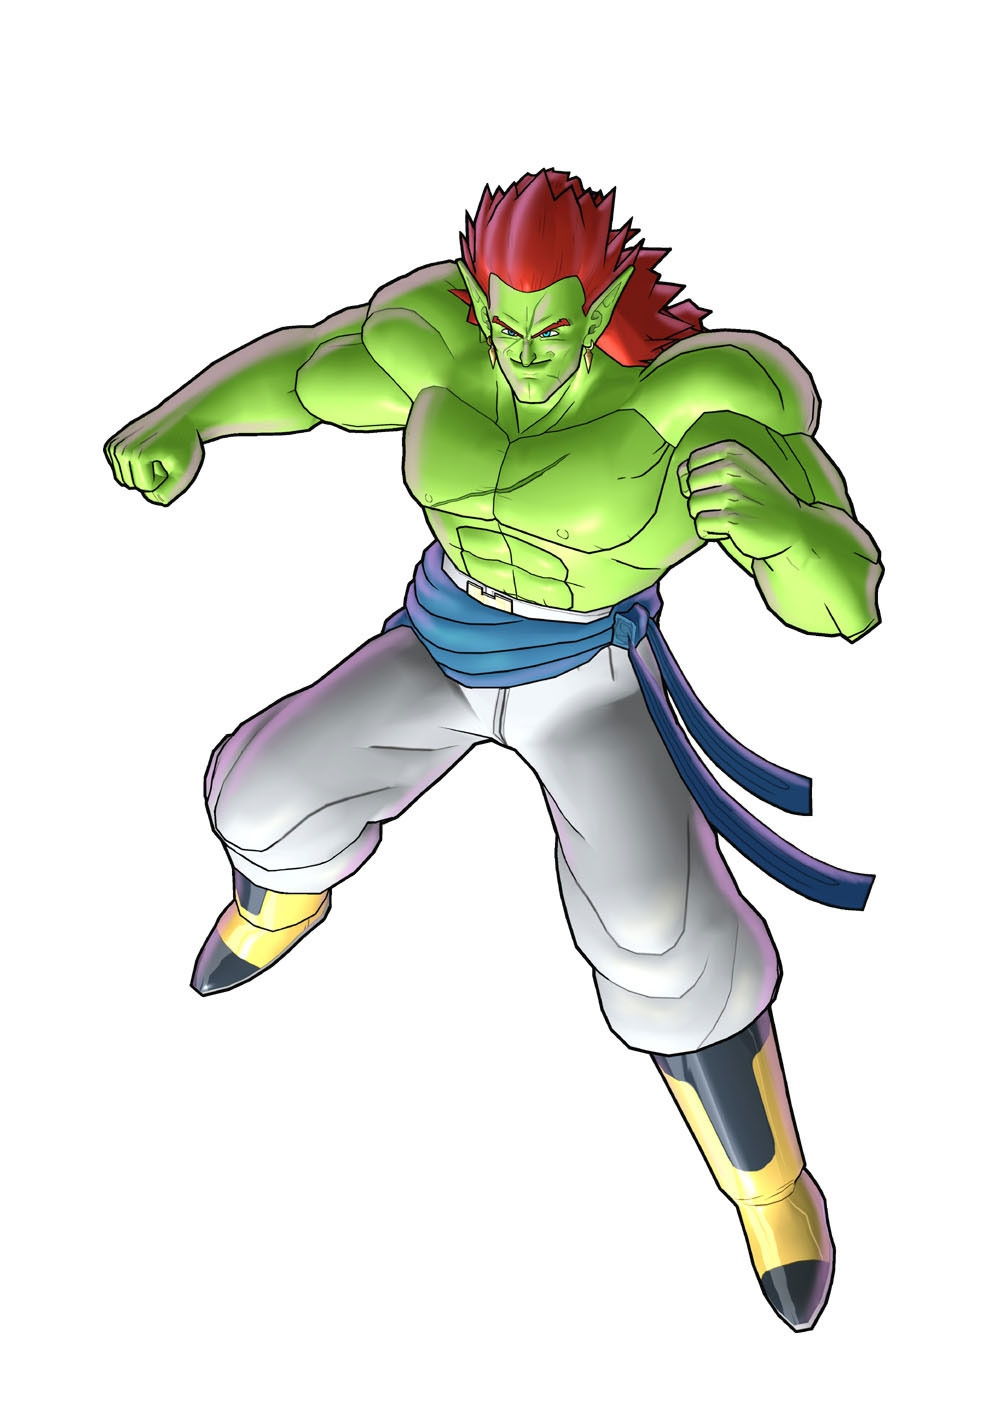 Bojack dragon ball wiki - Dragon bale z ...